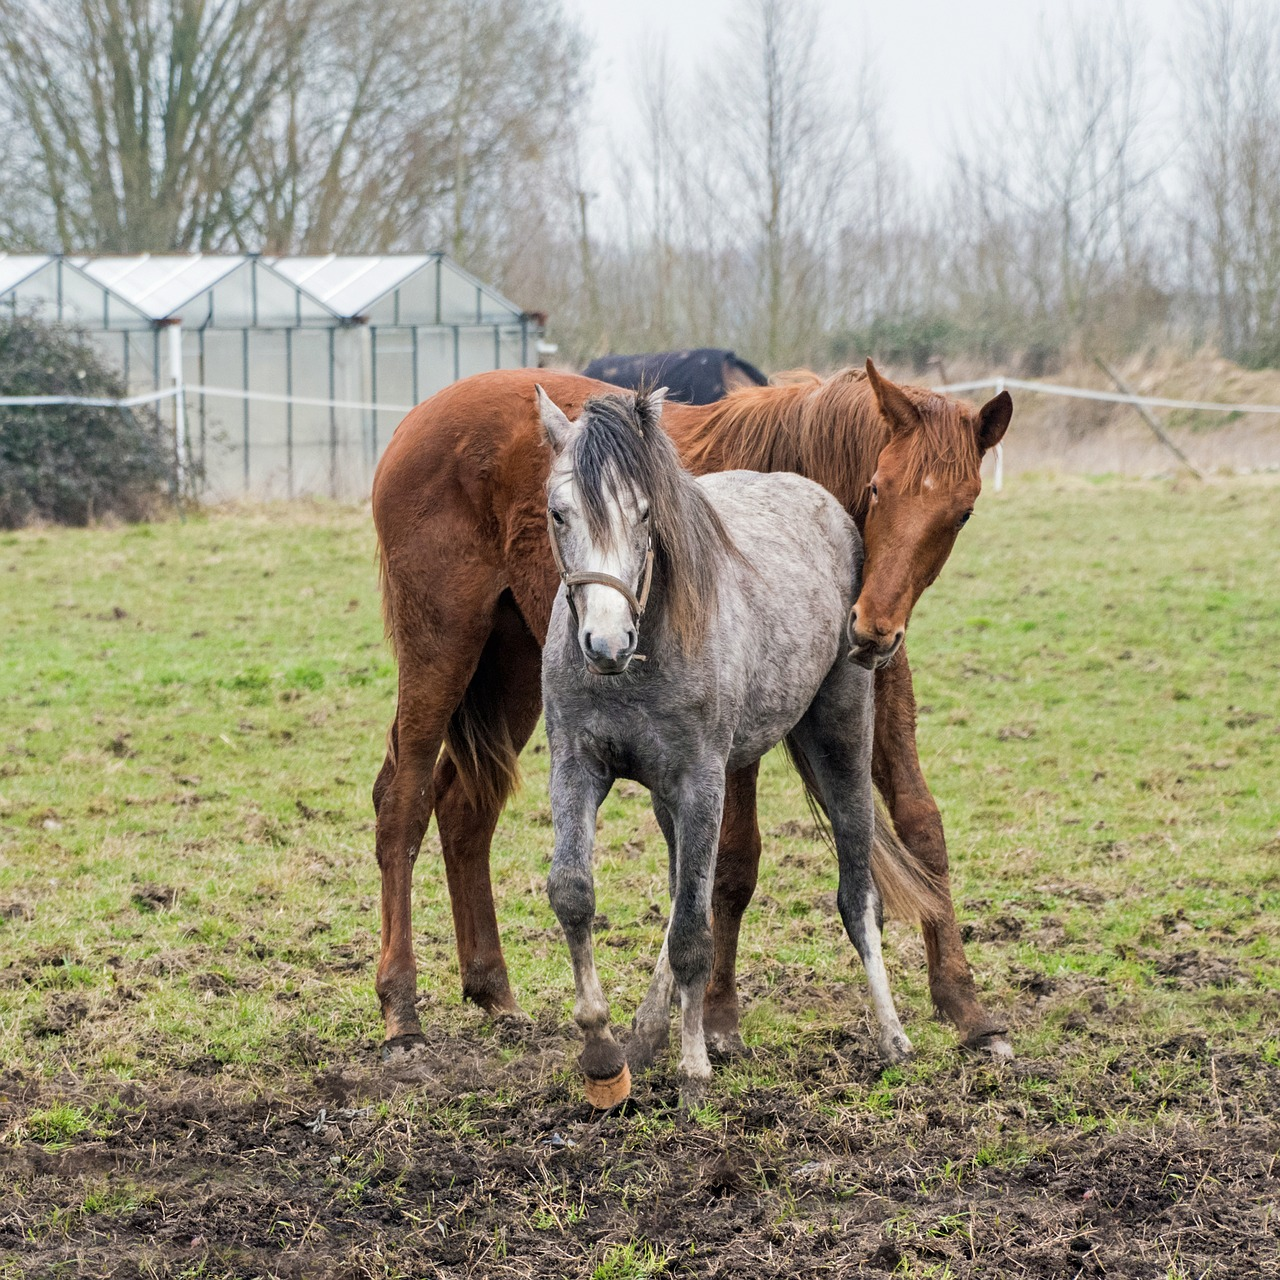 foal,horse,pre,grass,free pictures, free photos, free images, royalty free, free illustrations, public domain